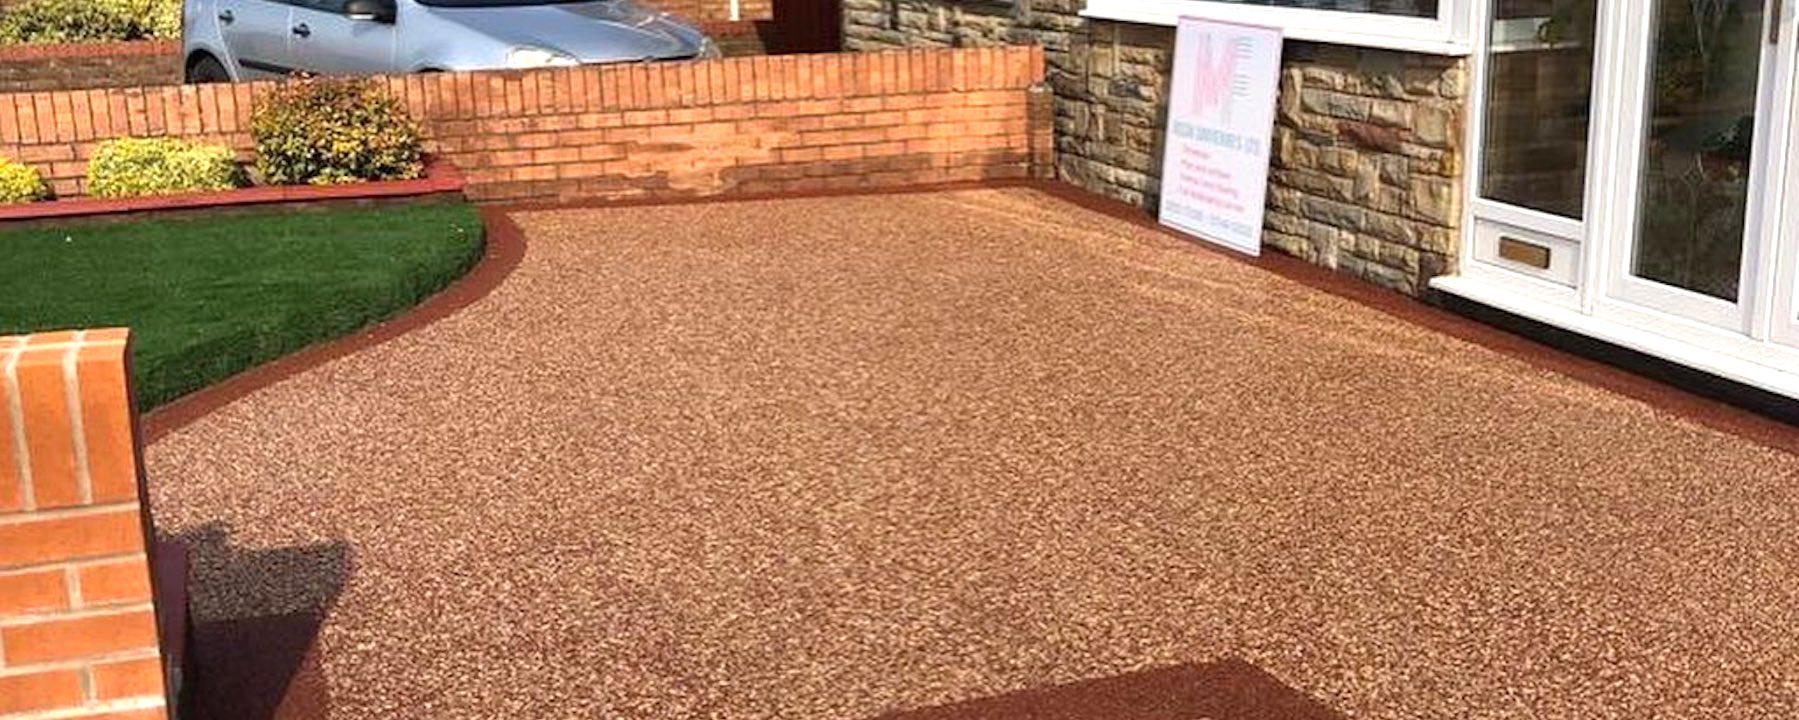 MF Resin Driveways - Resin Bound Driveways - About Us